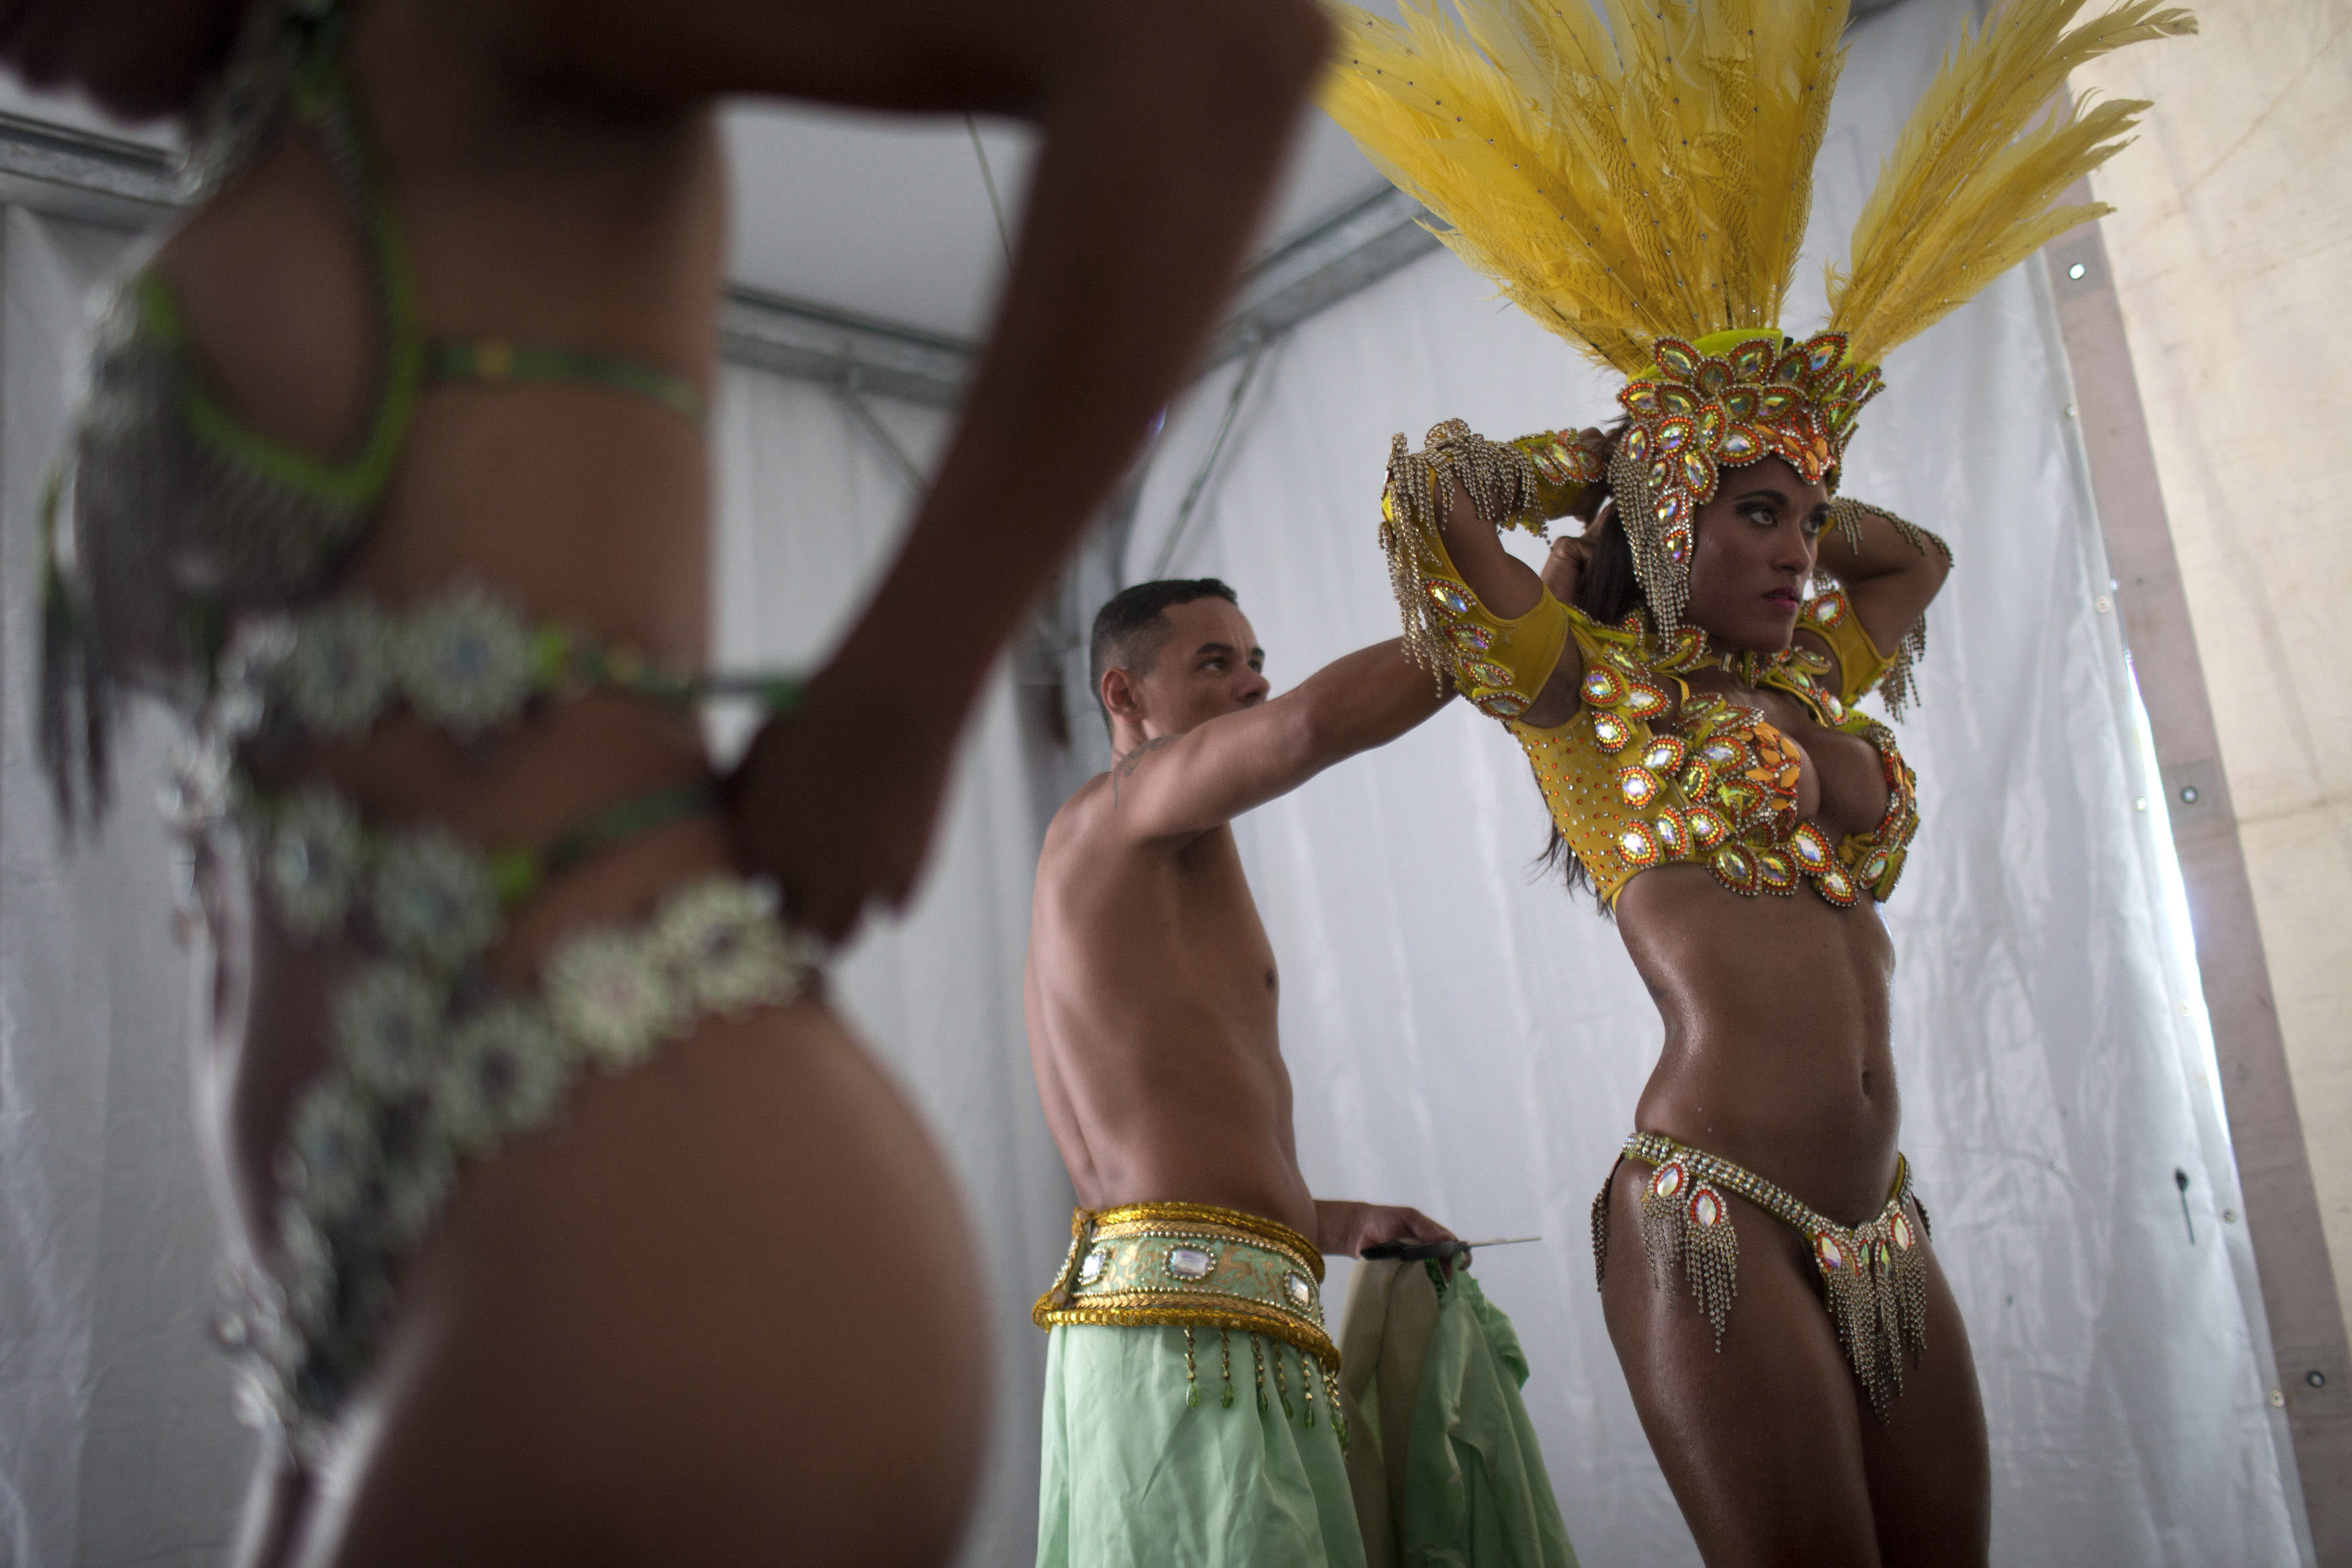 """In this photo taken Saturday, Feb. 2, 2013, samba dancer Diana Prado, right, is with her costume as she prepares for a carnival parade at central station in Rio de Janeiro, Brazil. Though samba dancers, or """"passistas,"""" as they're known in Portuguese, are unquestionably the star attractions of the world's most iconic Carnival celebrations, they're not on the payroll of the samba school they represent. (AP Photo/Felipe Dana)"""